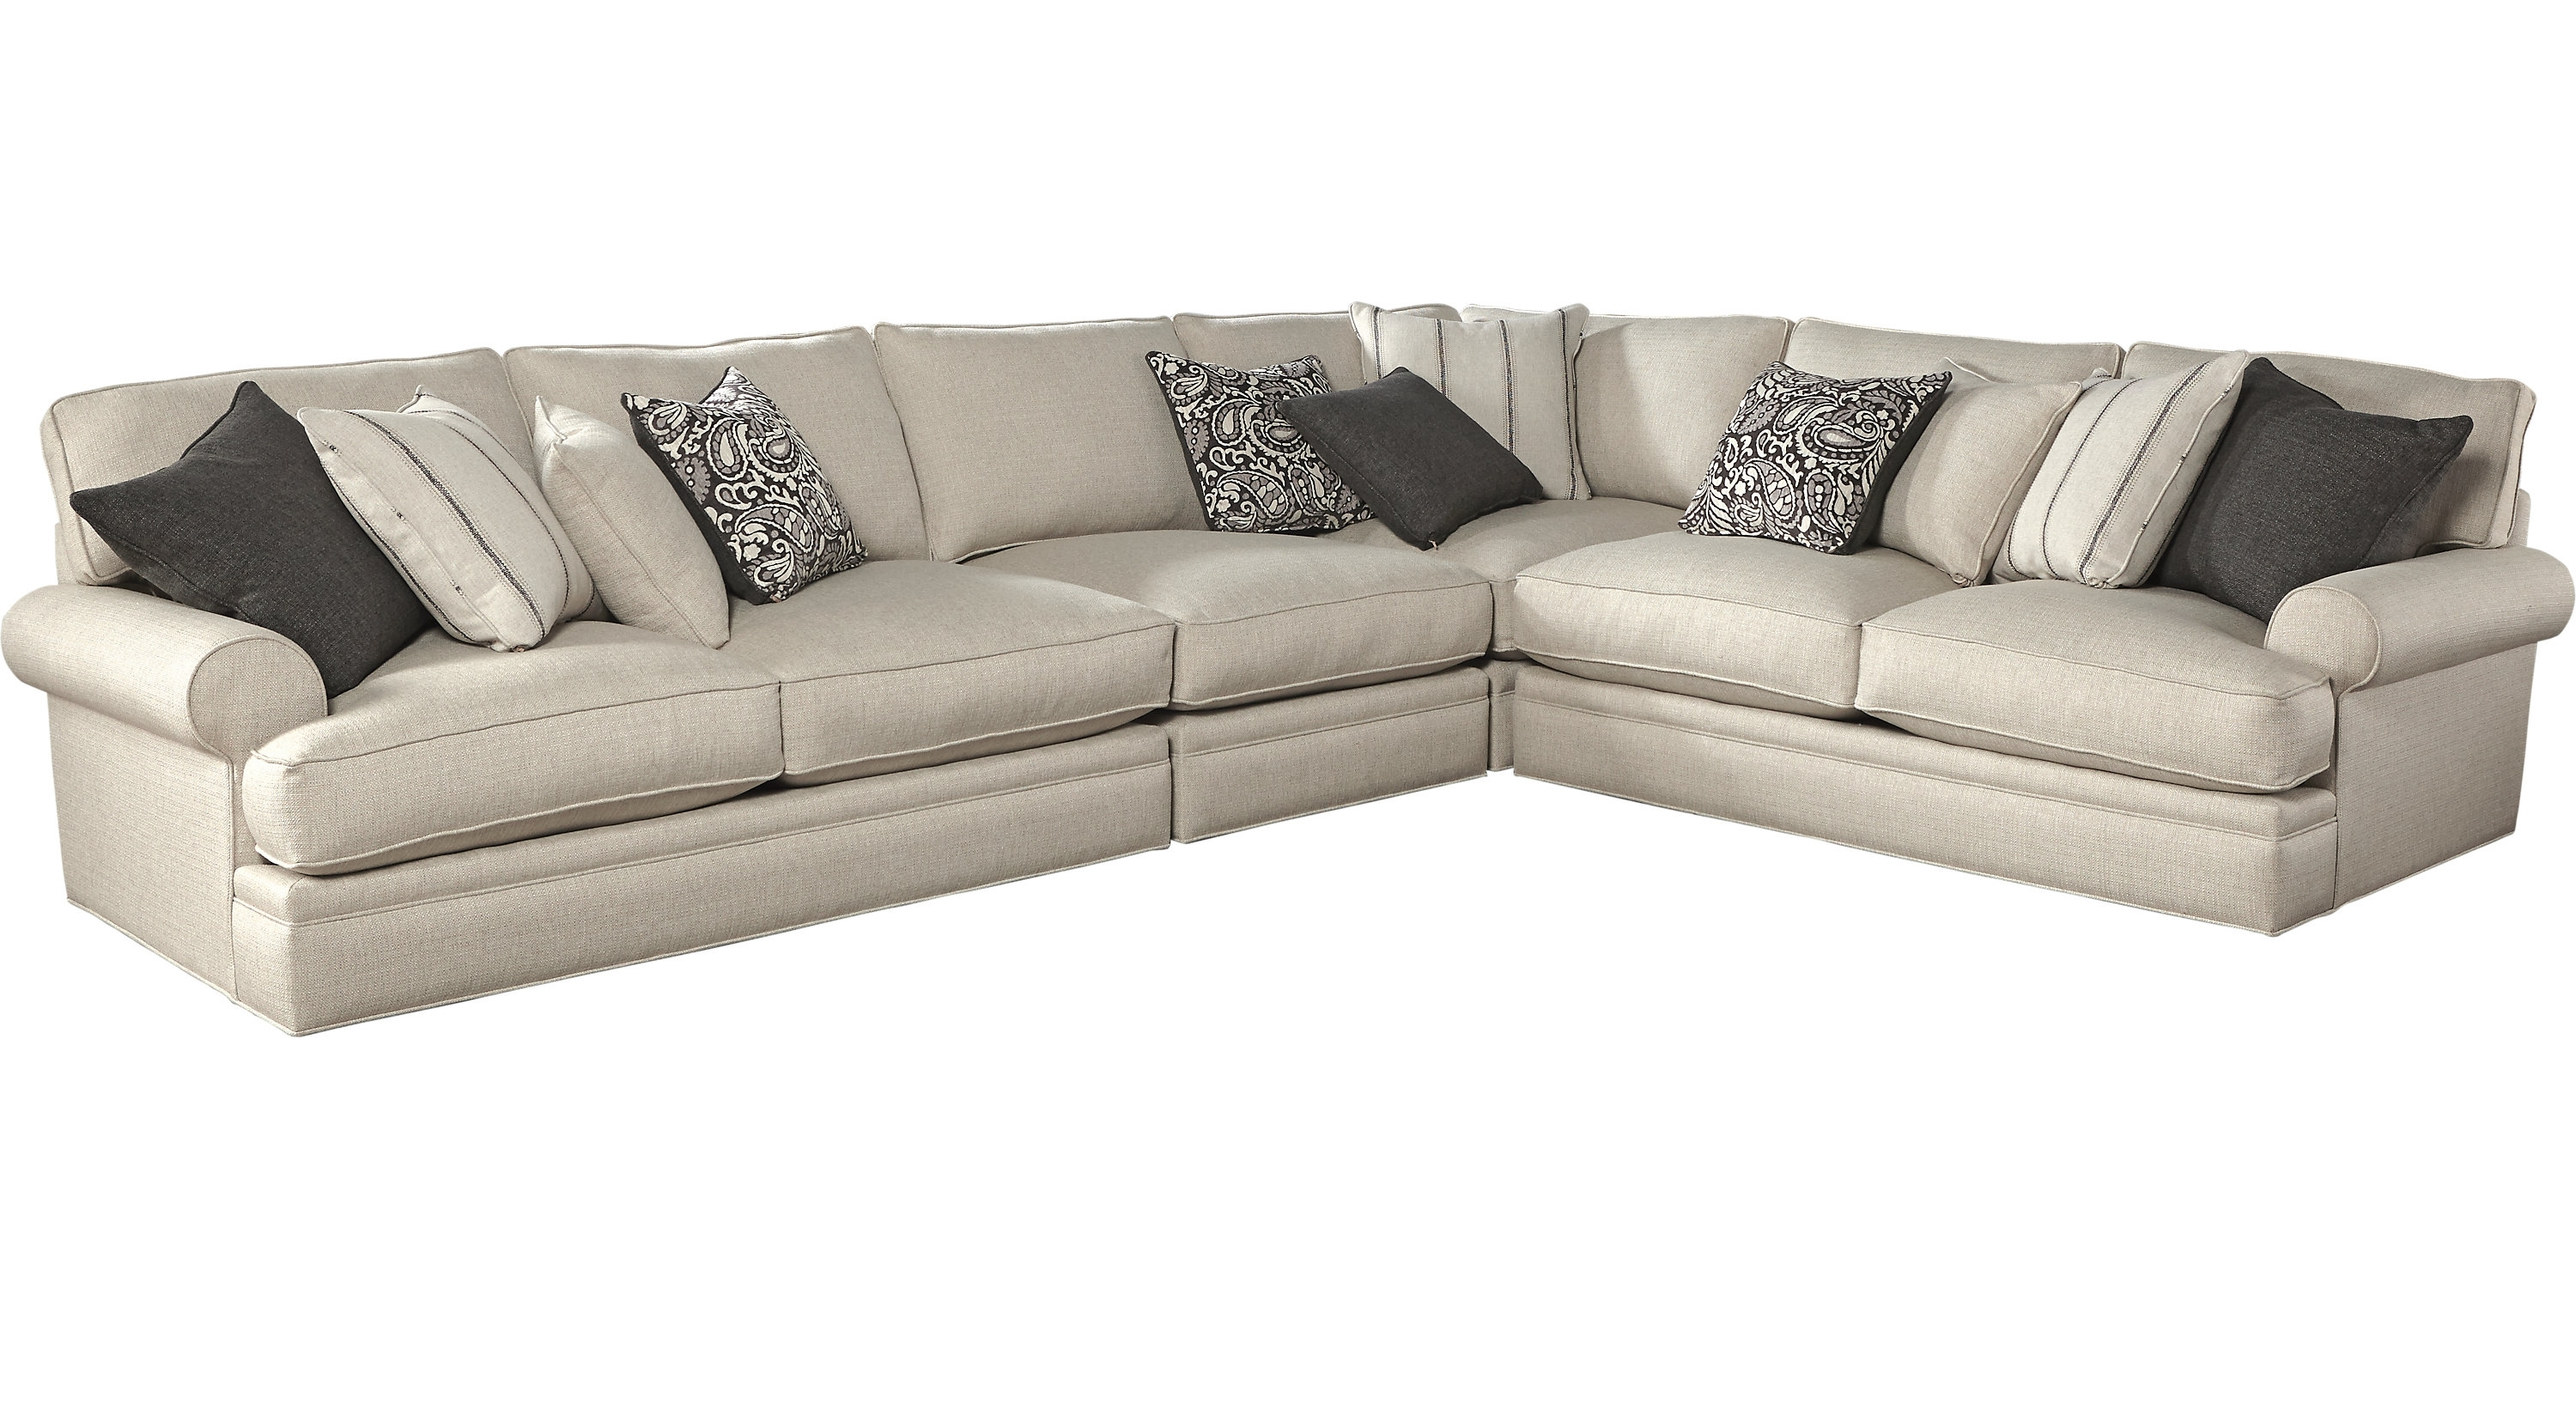 Washable Sofas Regarding Newest Sofas : Dining Chair Slipcovers White Couch Covers Washable Sofa (View 20 of 20)